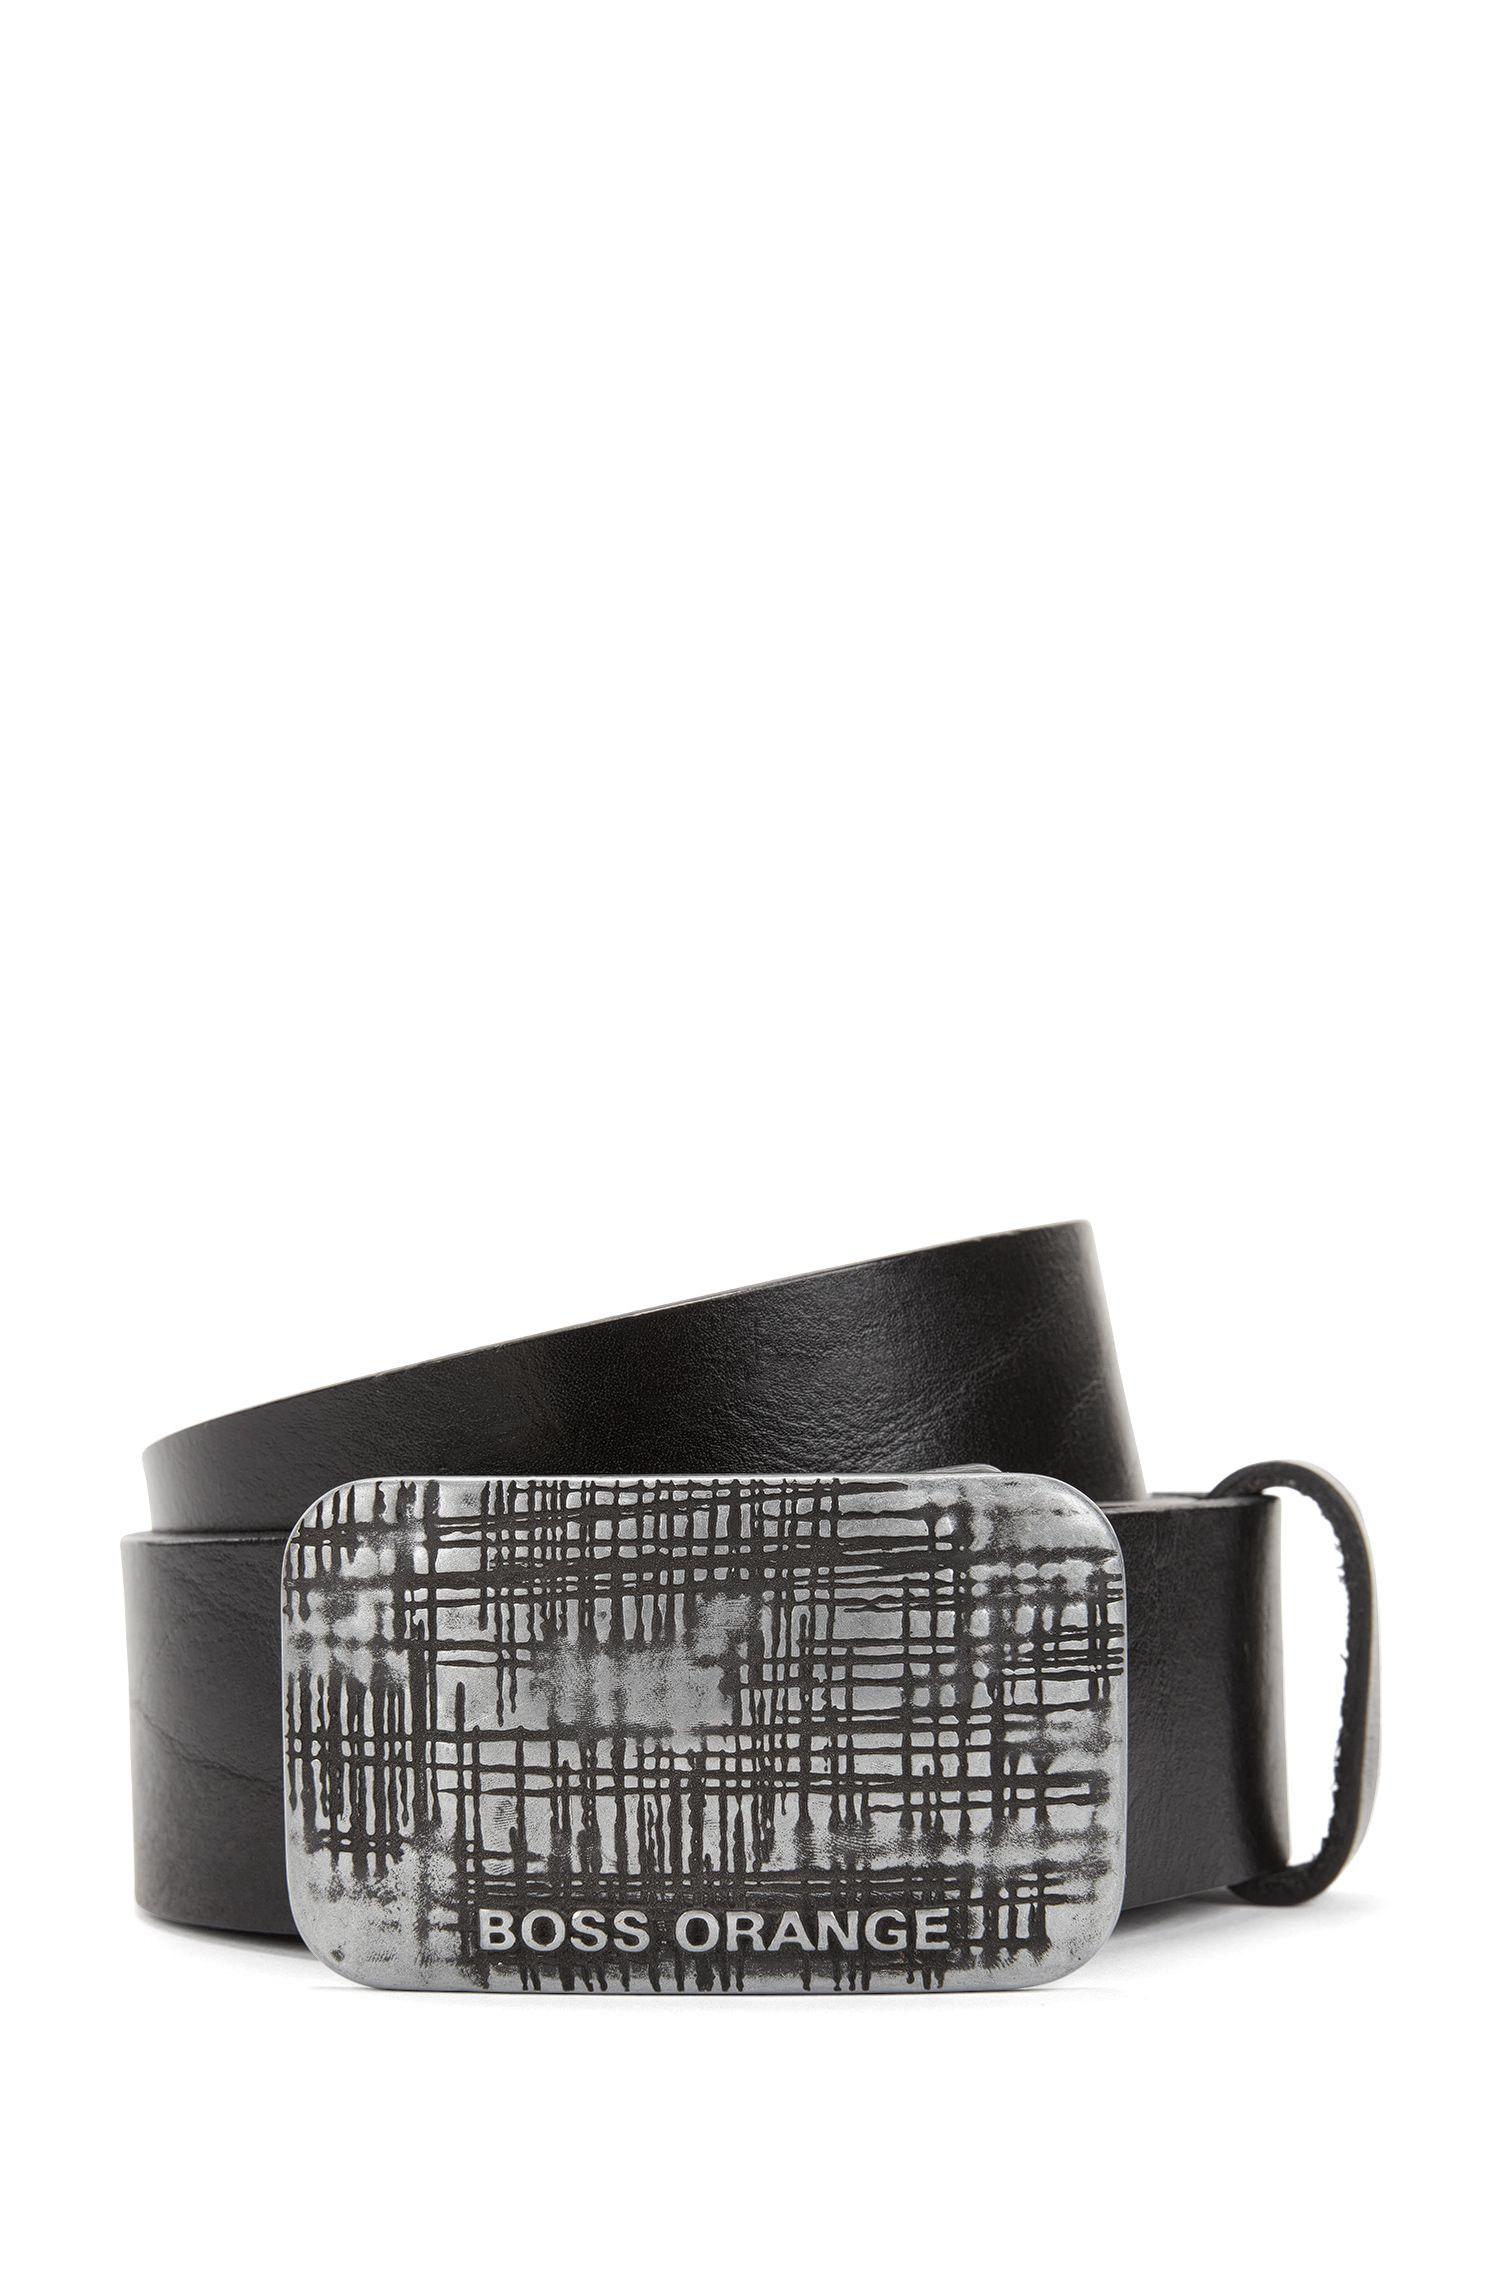 Plaque-buckle belt in rich leather